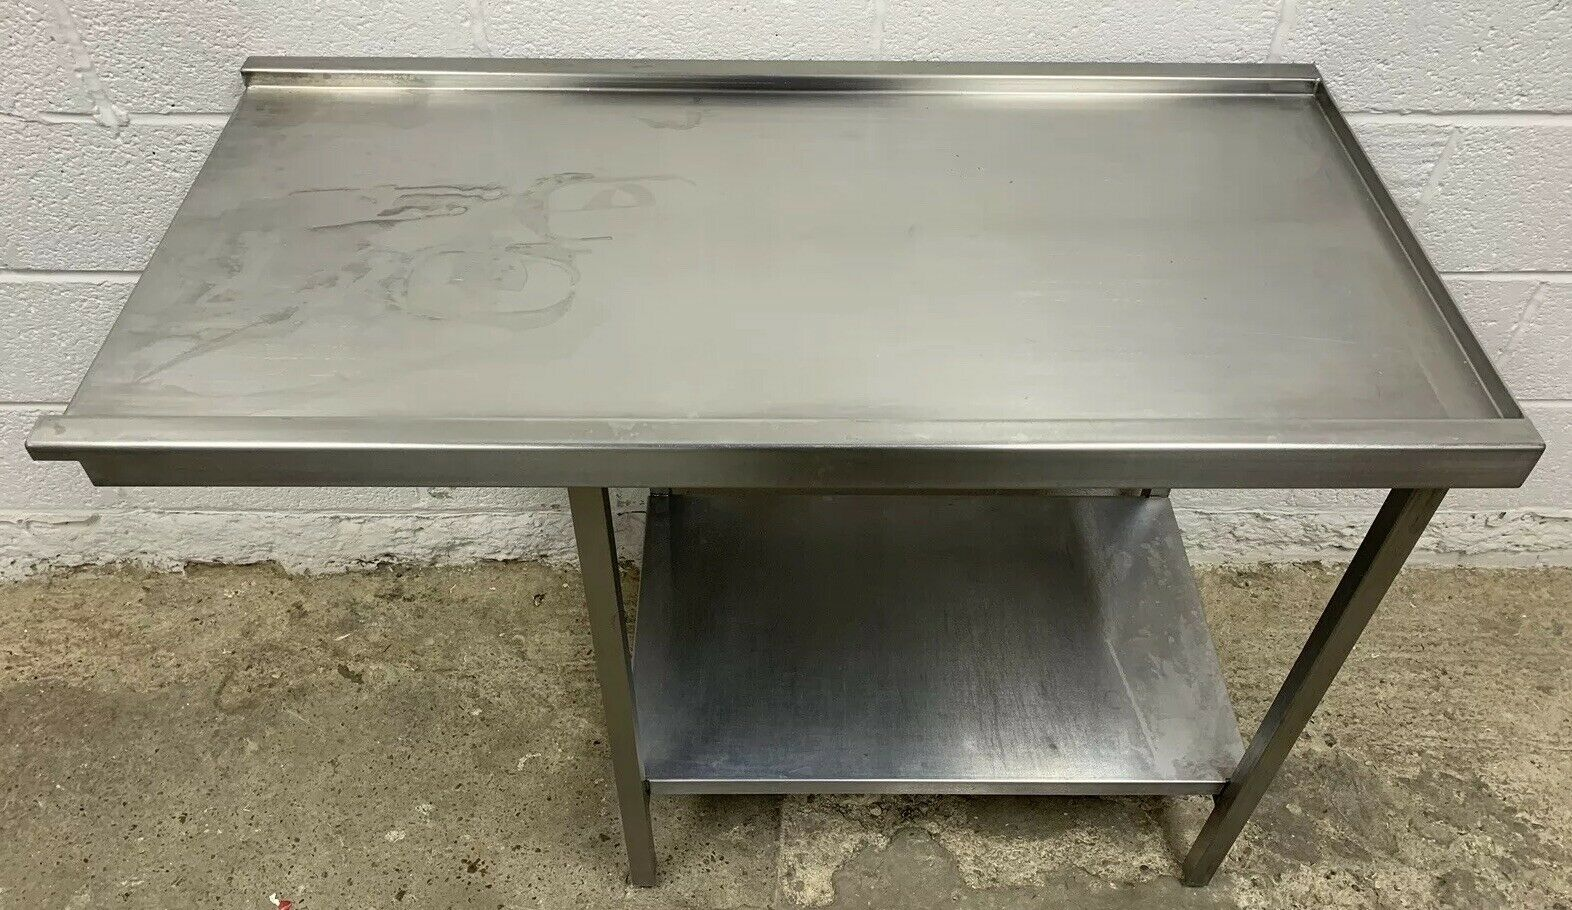 Stainless Steel Dishwasher Outlet / Exit Table - Image 3 of 4